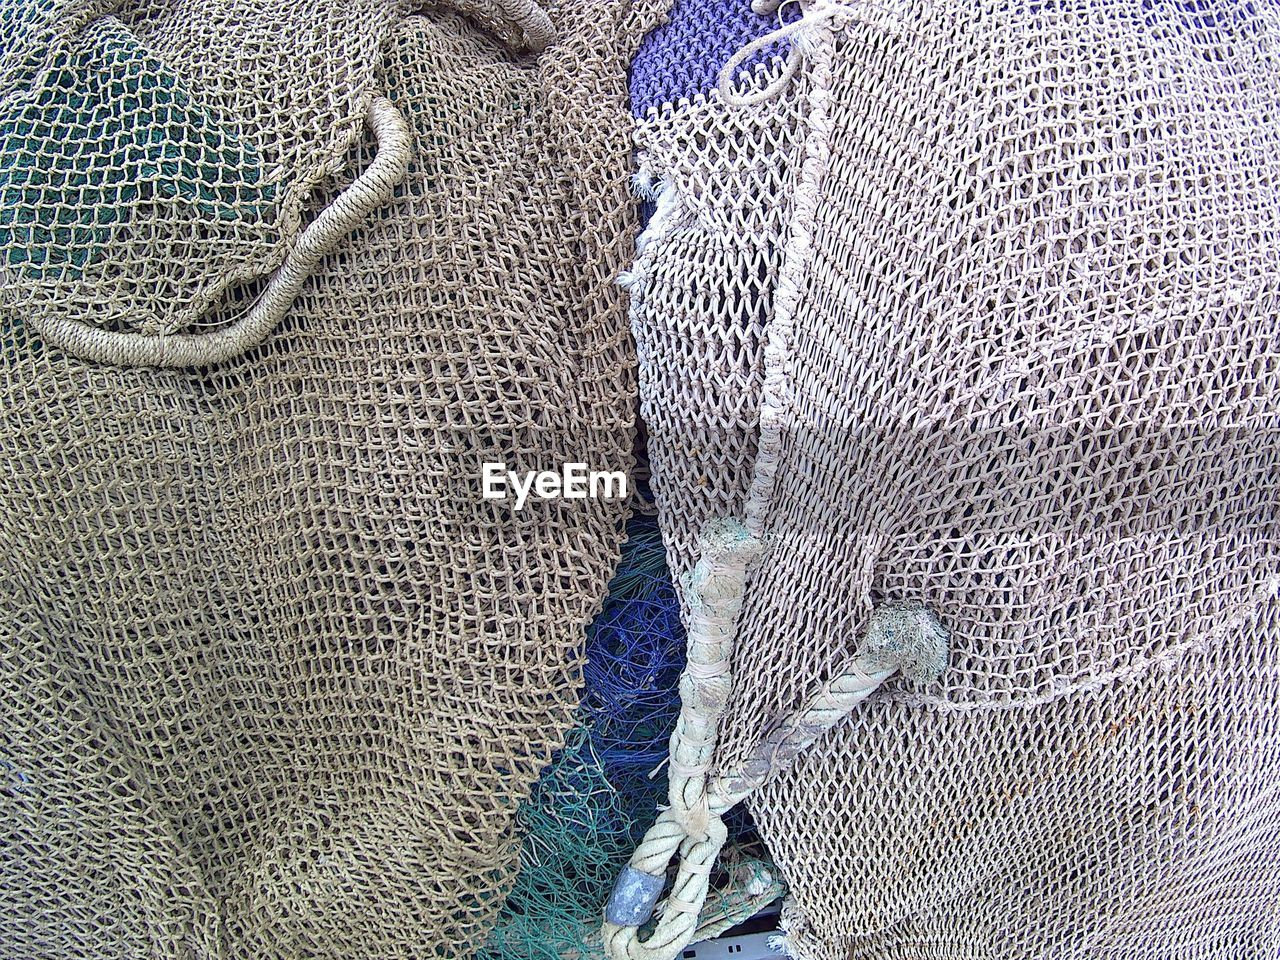 fishing net, textile, textured, no people, full frame, rope, backgrounds, pattern, fishing equipment, close-up, jute, indoors, wool, fishing tackle, day